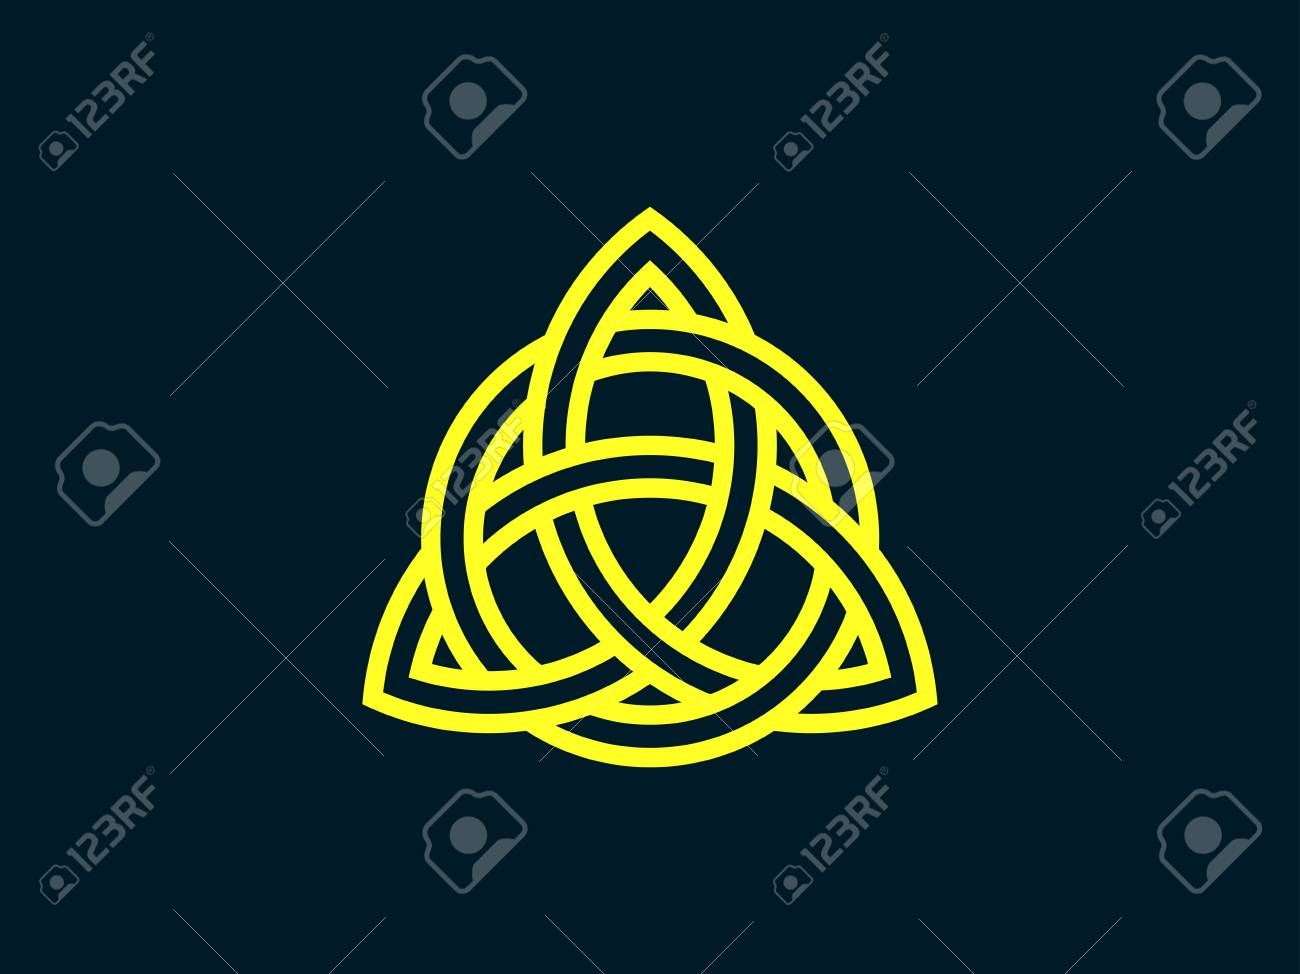 Triquetra trinity knot celtic symbol of eternity vector celtic symbol of eternity vector illustration stock vector 85264894 buycottarizona Image collections